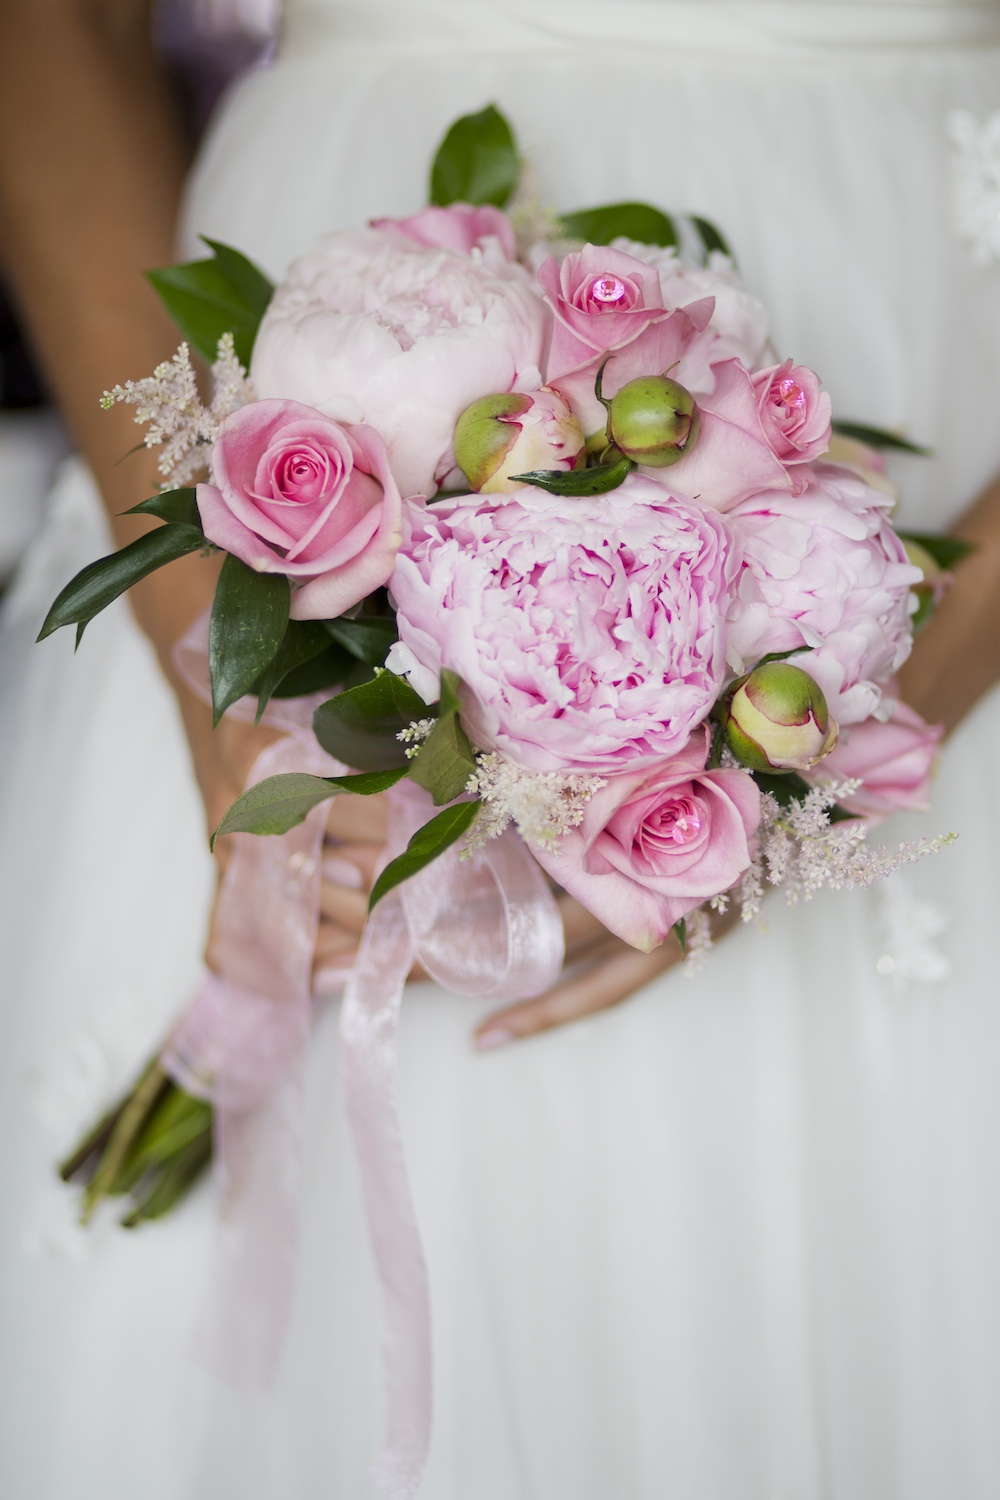 Pretty Lush Pink Wedding Bouquet with Peonies and Roses from Media Florist / photo by Krista Patton Photography